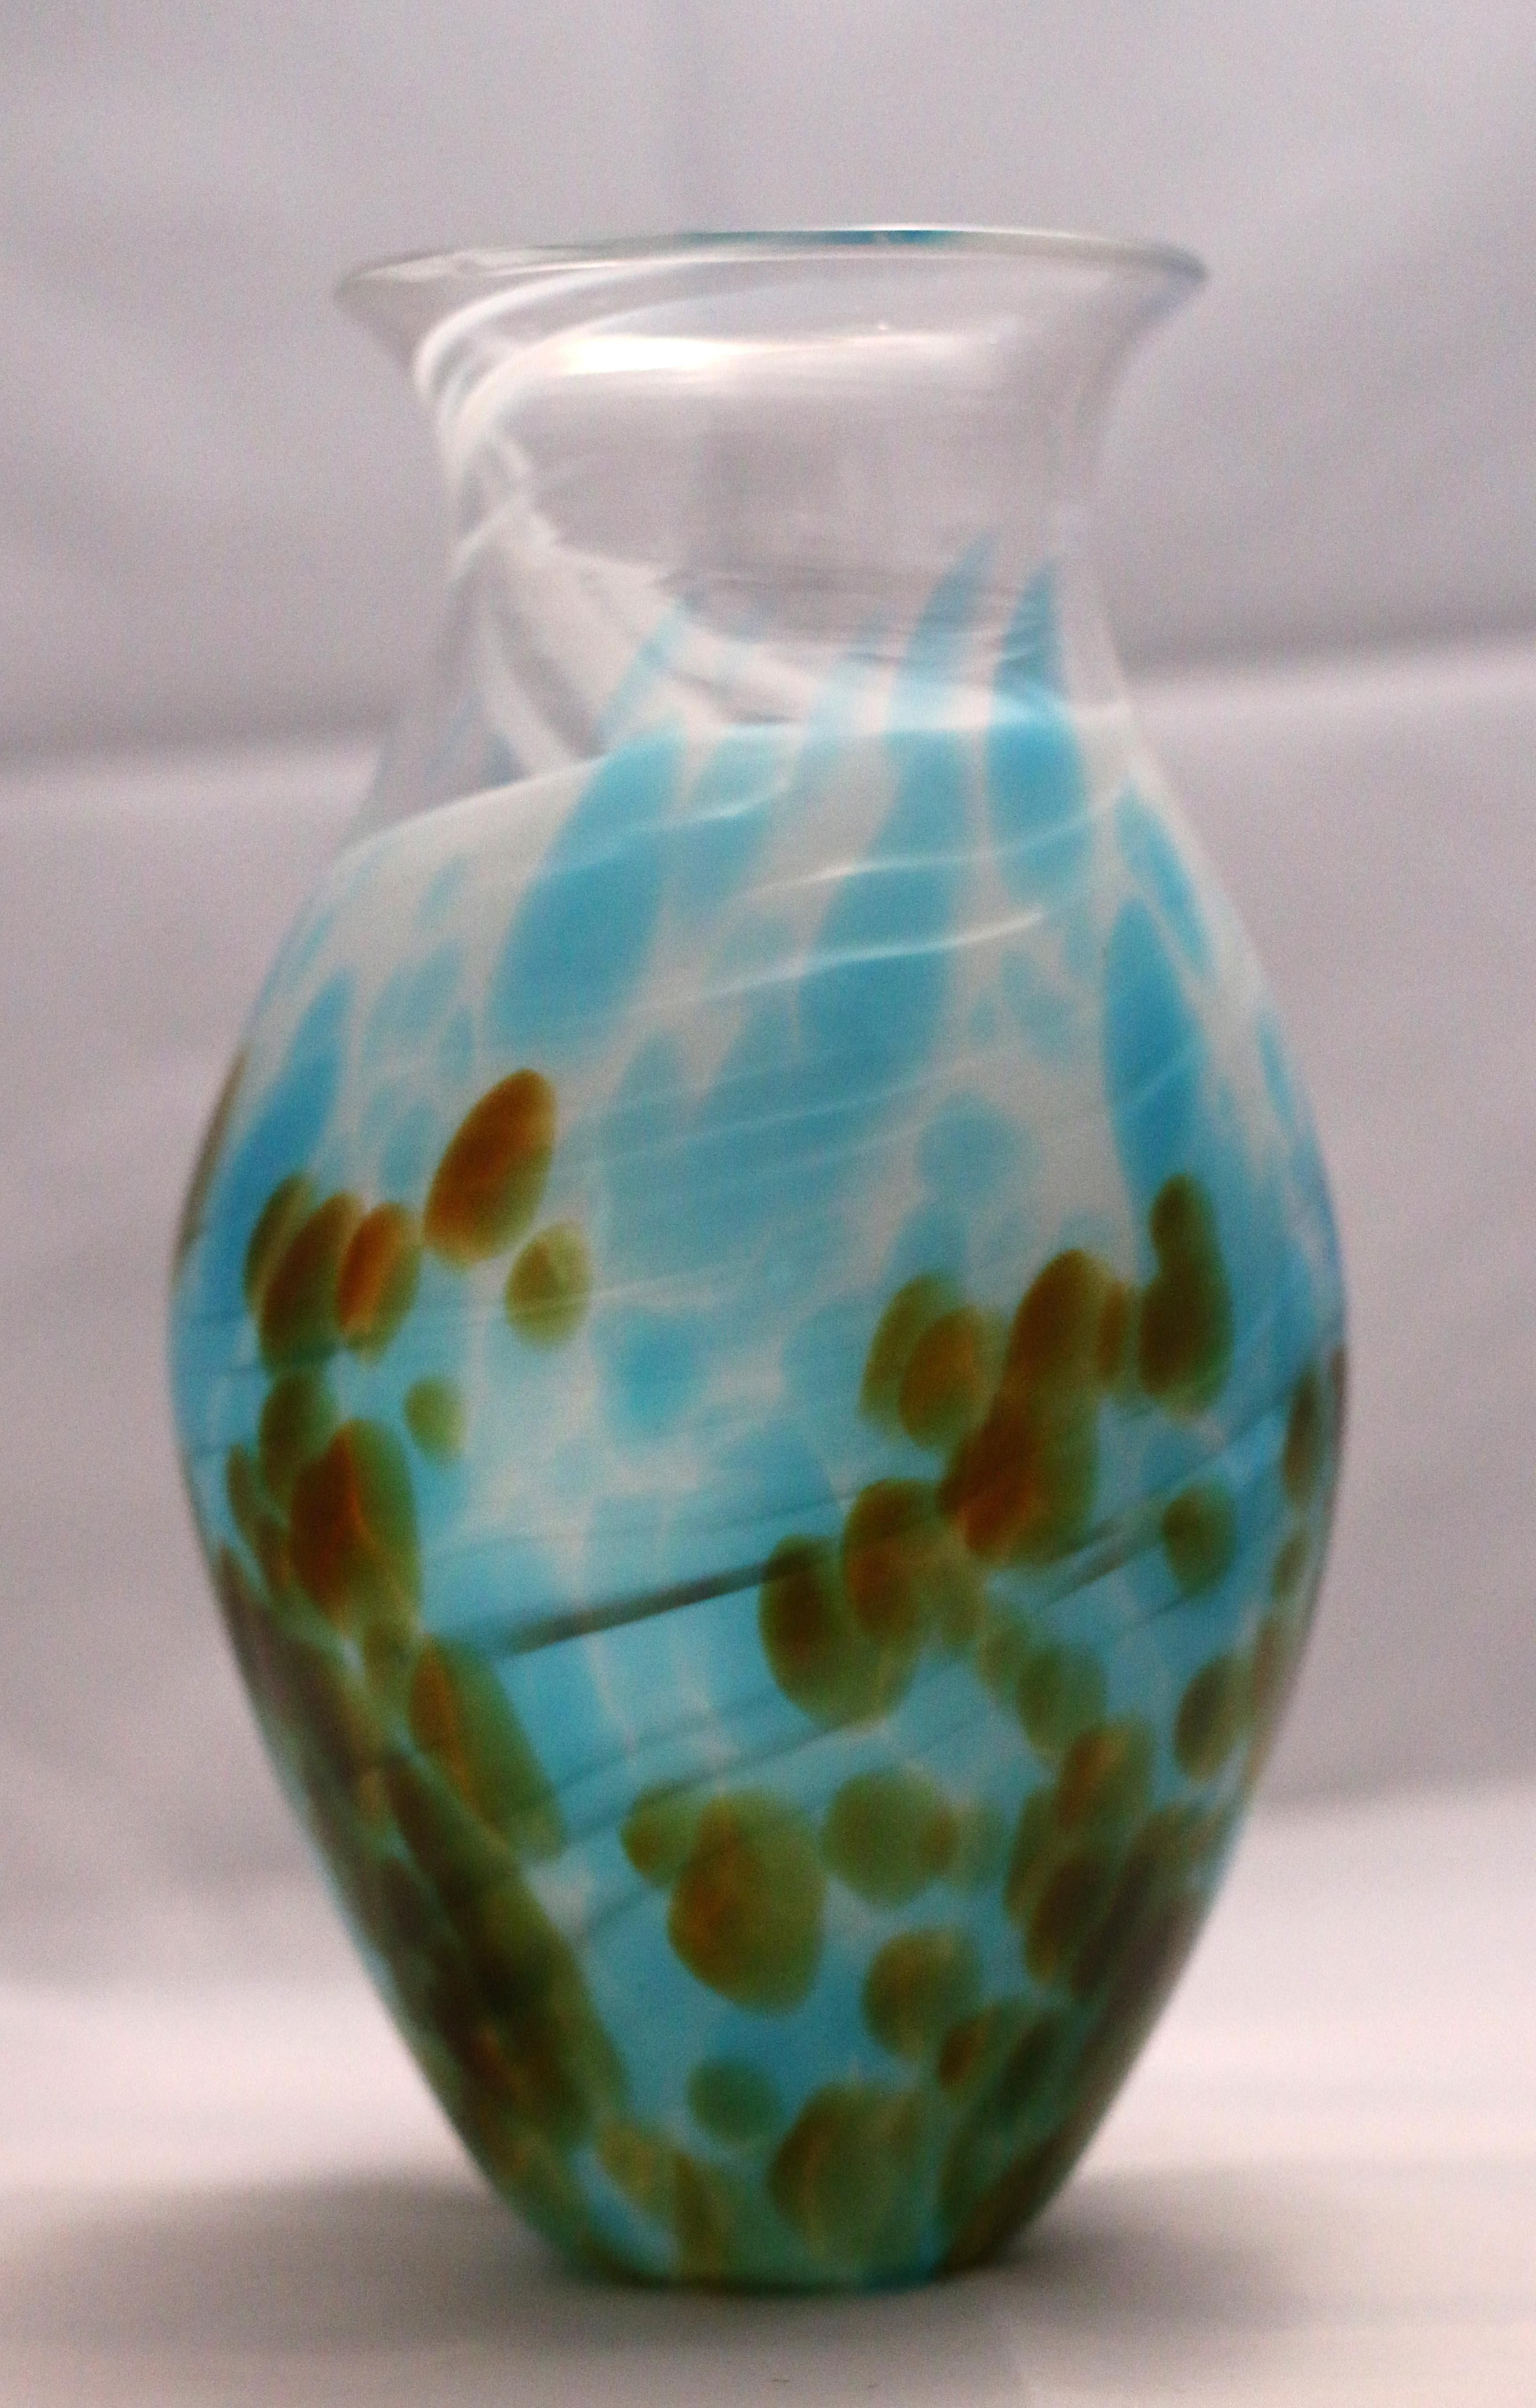 antique cut glass vase prices of 22 hobnail glass vase the weekly world with white milk glass vases bulk glass designs